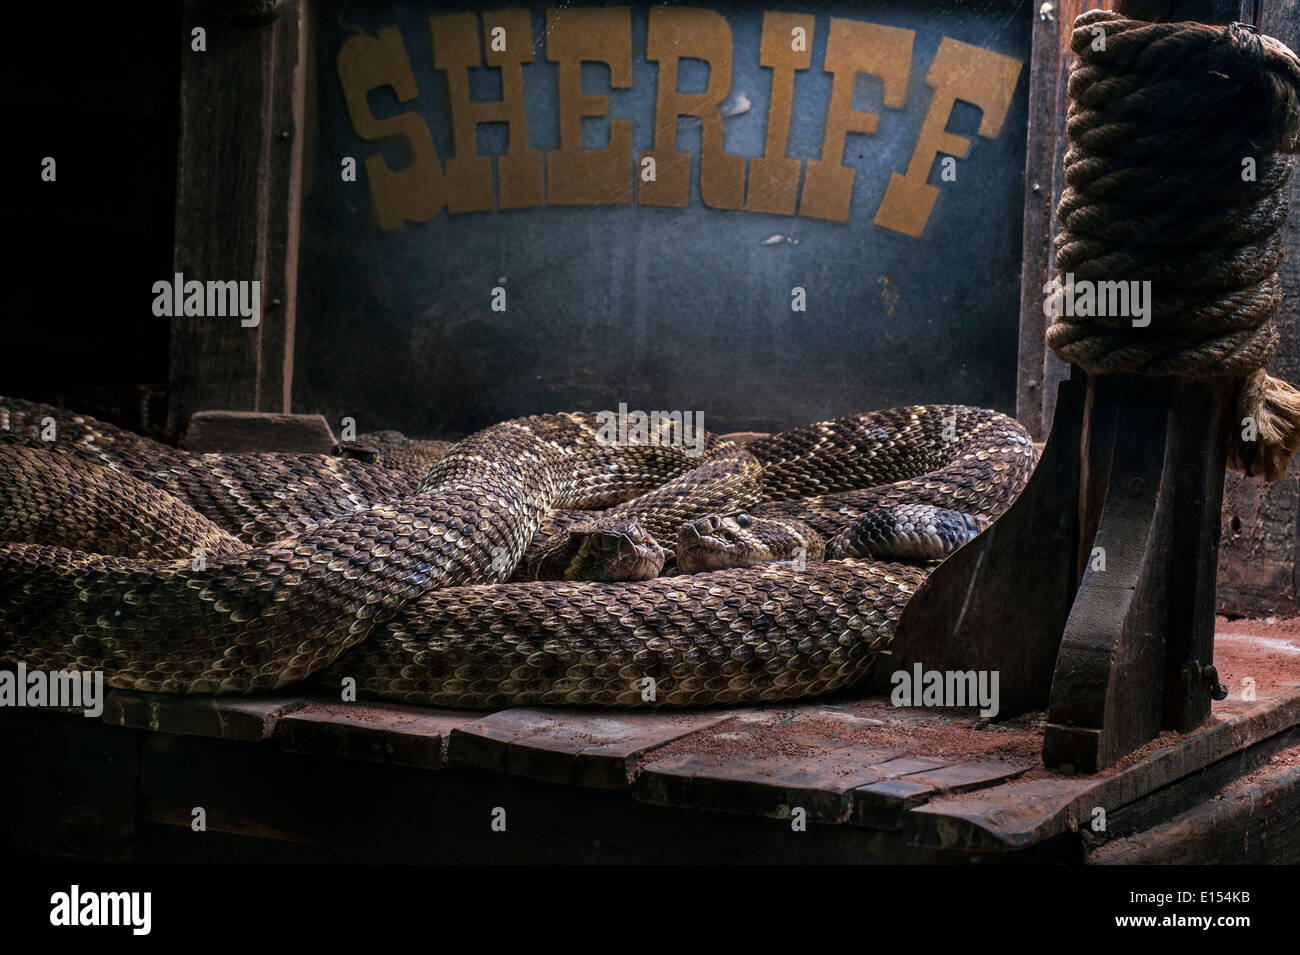 Two Western diamondback rattlesnakes / Texas diamond-back rattlesnake (Crotalus atrox) curled up in old building, Stock Photo